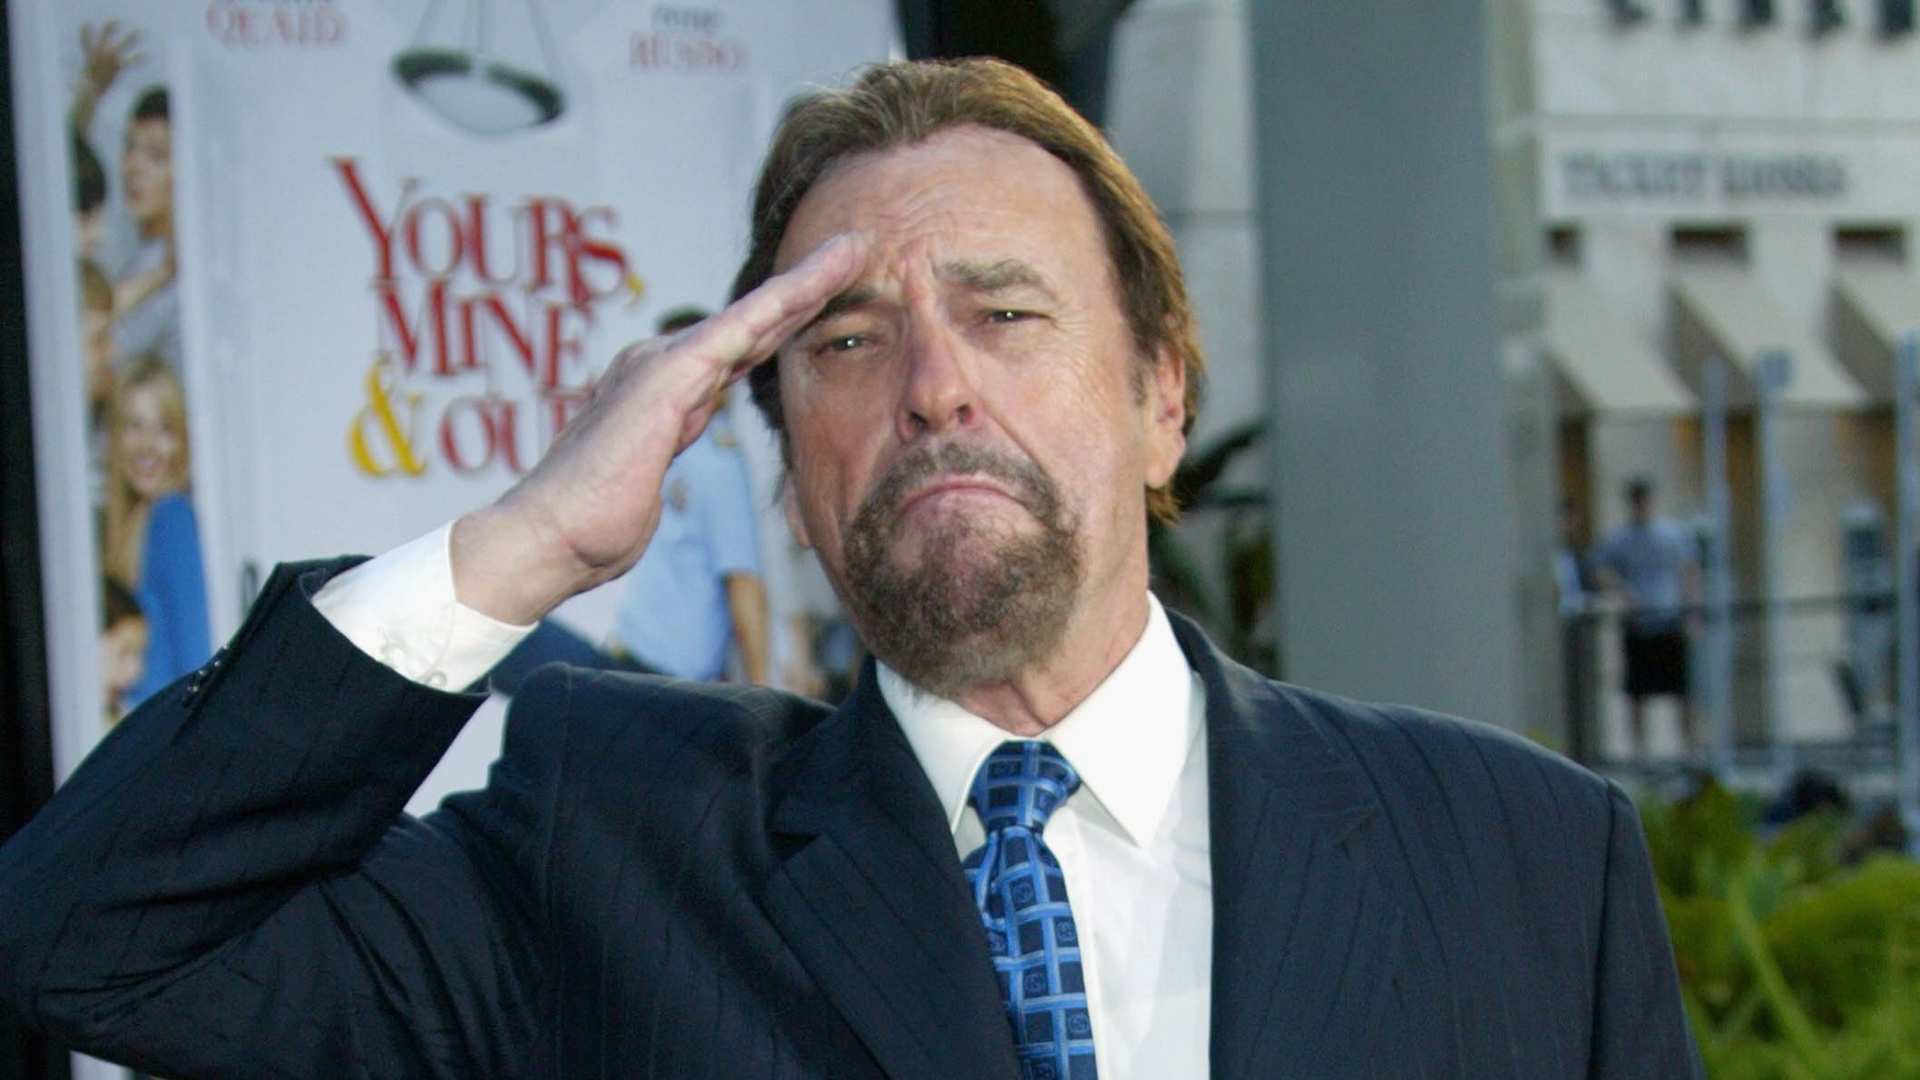 """Actor Rip Torn attends the premiere of """"Yours, Mine & Ours"""" at the Cinerama Dome in Hollywood on Nov. 20, 2005. (Credit: Frederick M. Brown / Getty Images)"""